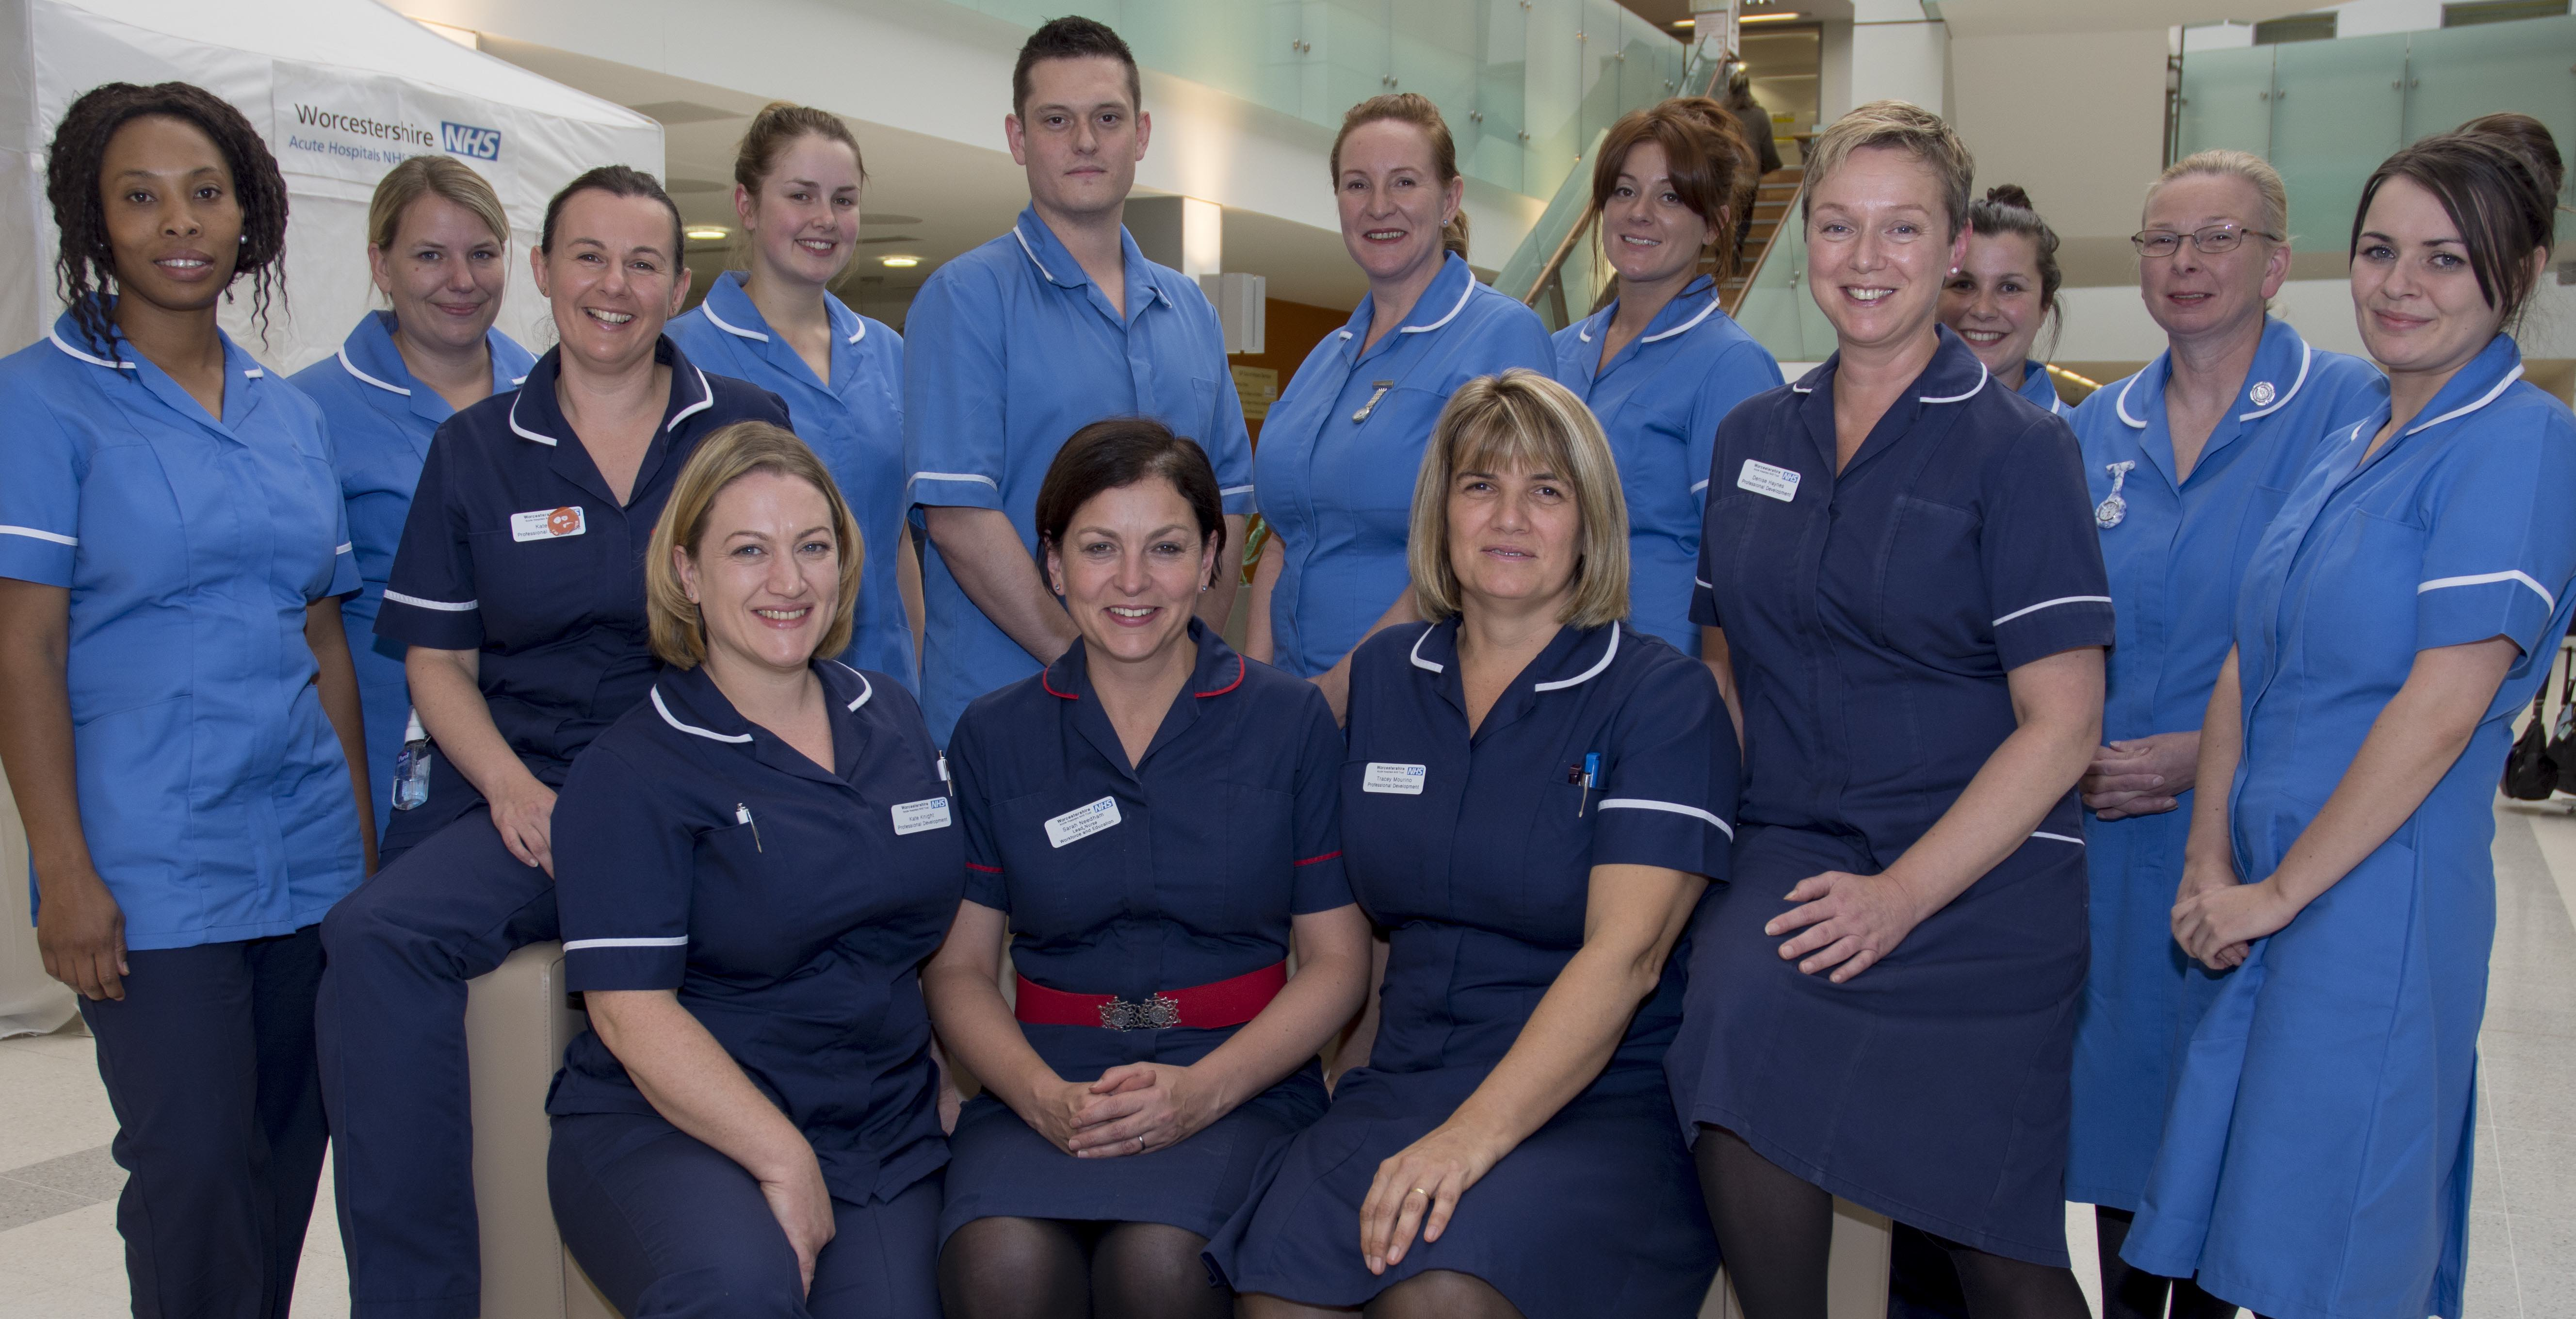 New Nurses Improve Care For Patients With Learning Disabilities And